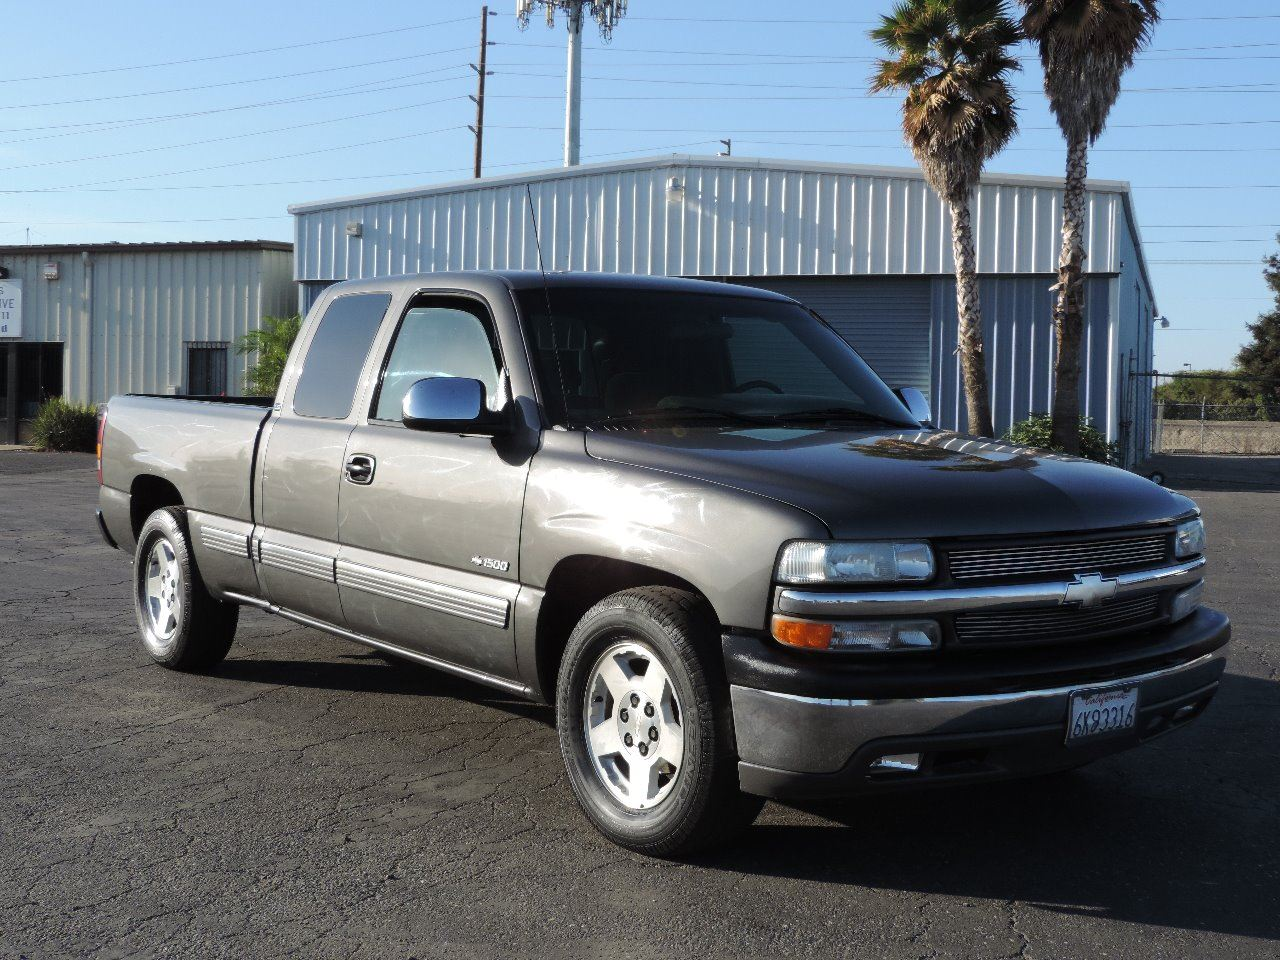 2001 chevrolet silverado 1500 4dr extended cab ls 2wd sb. Black Bedroom Furniture Sets. Home Design Ideas